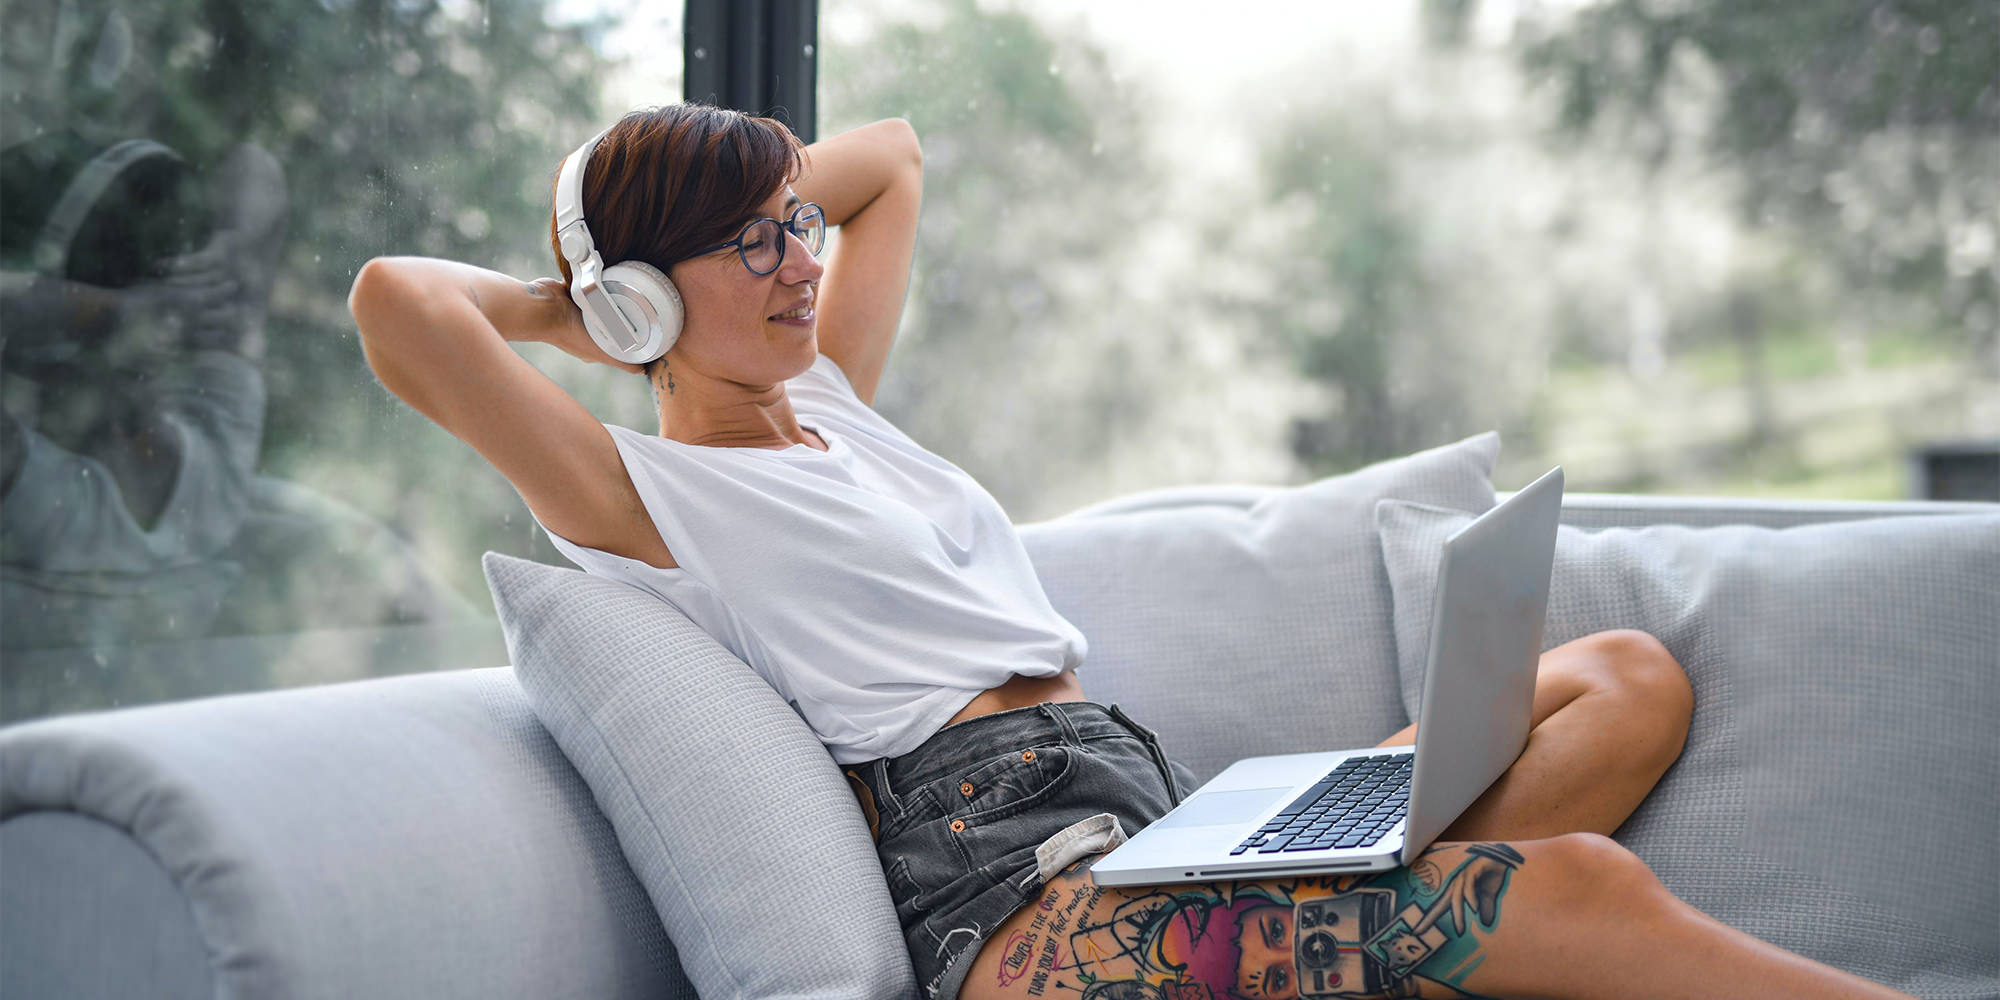 A woman in her late twenties with short hair and glasses, leaning back and listening to music on a white couch. Her eyes are closed and she looks relaxed - it's music self-care!